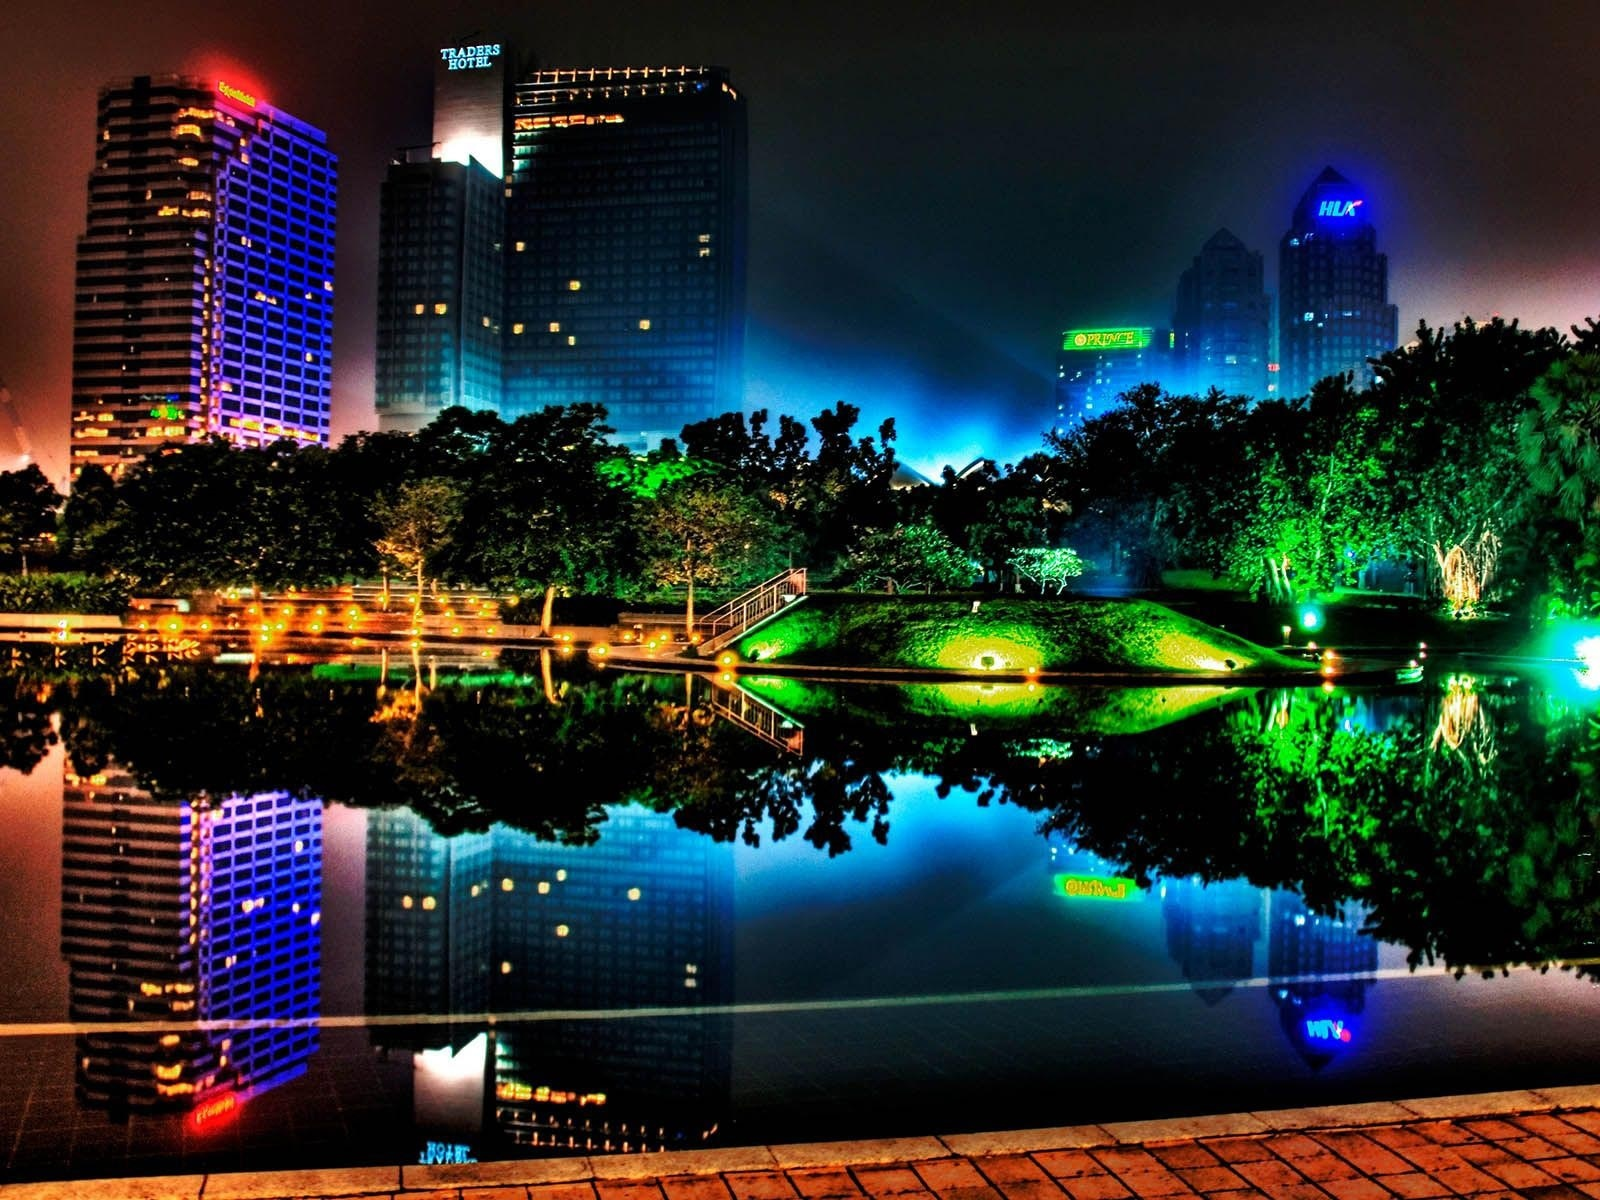 Beautiful night city, buildings, pond, lights, trees, park 1600x1200 wallpaper